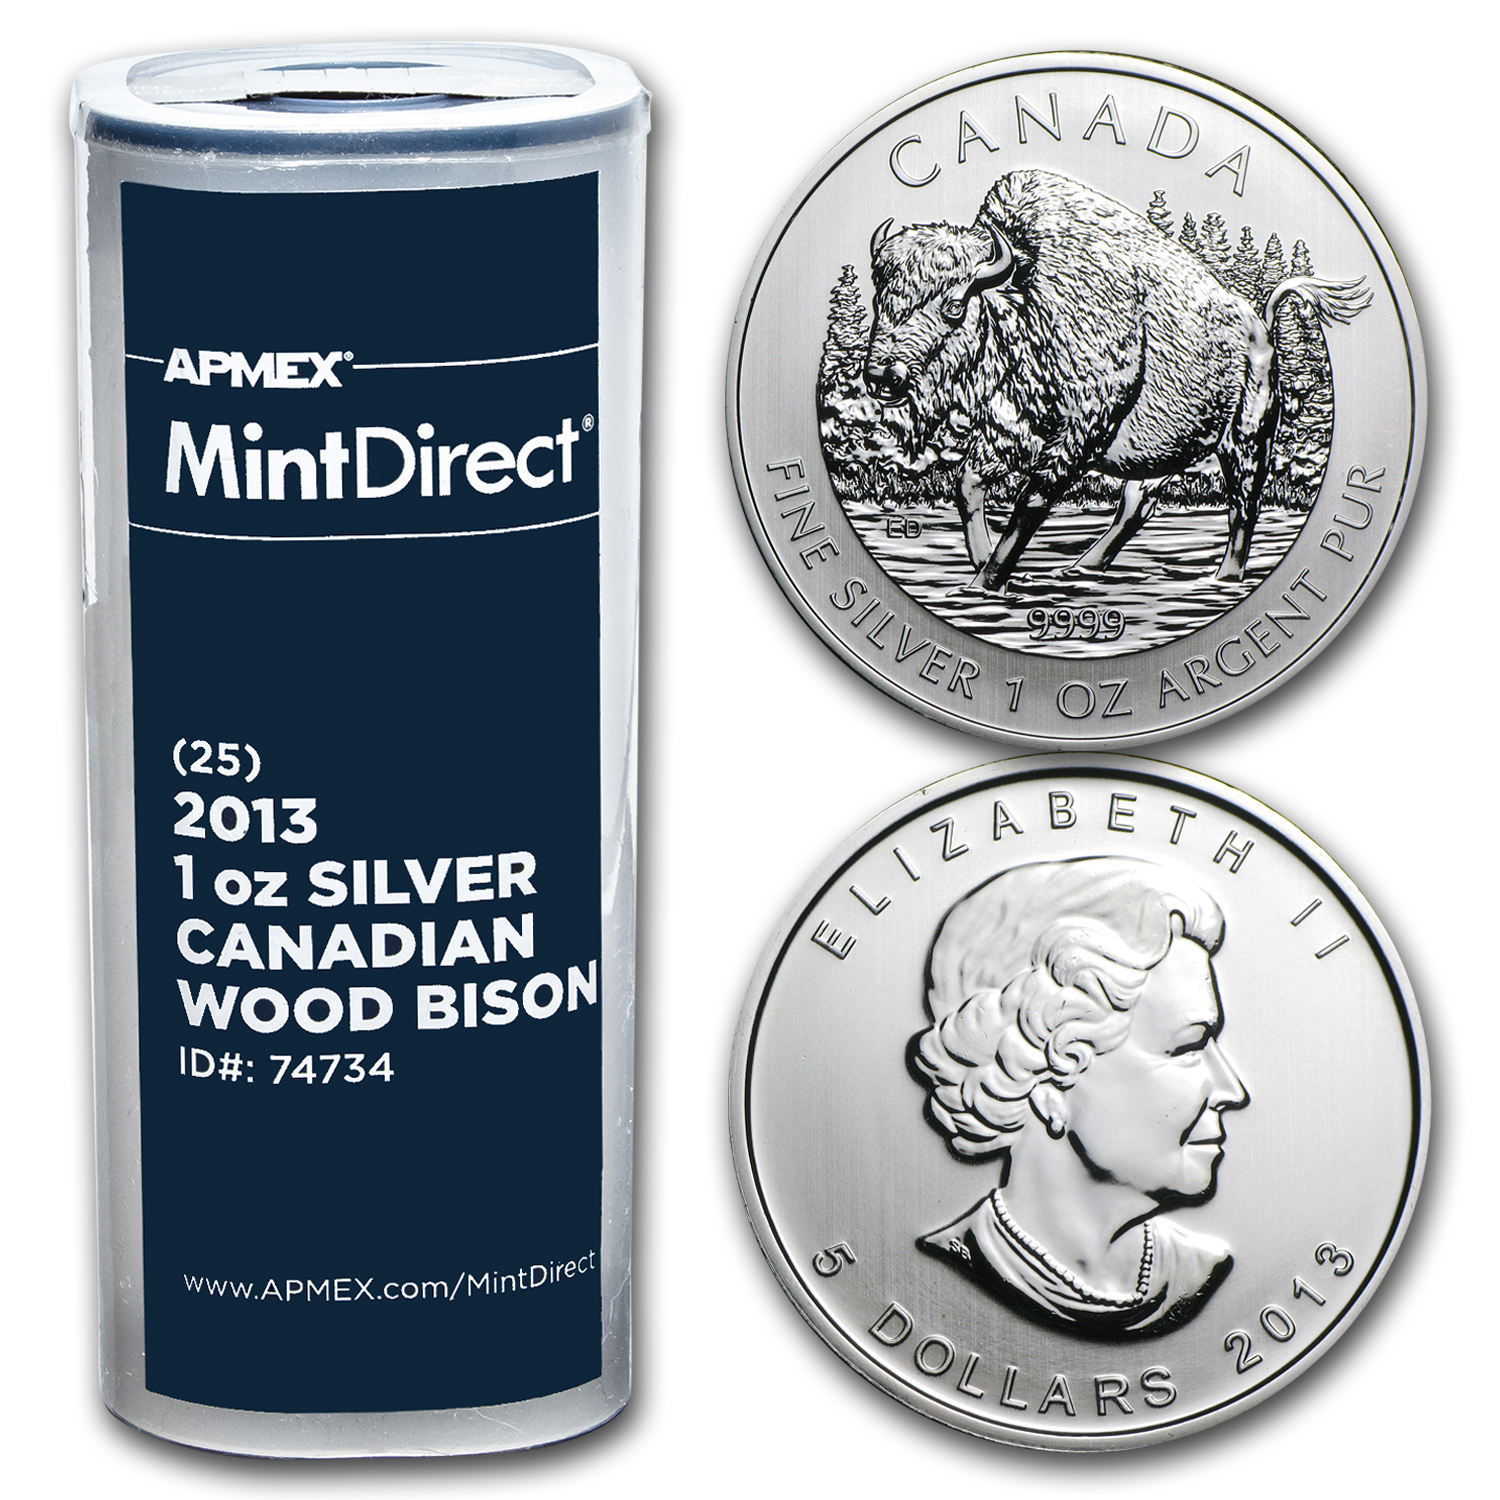 2013 Canada 1 oz Silver Wood Bison (25-Coin MintDirect® Tube)